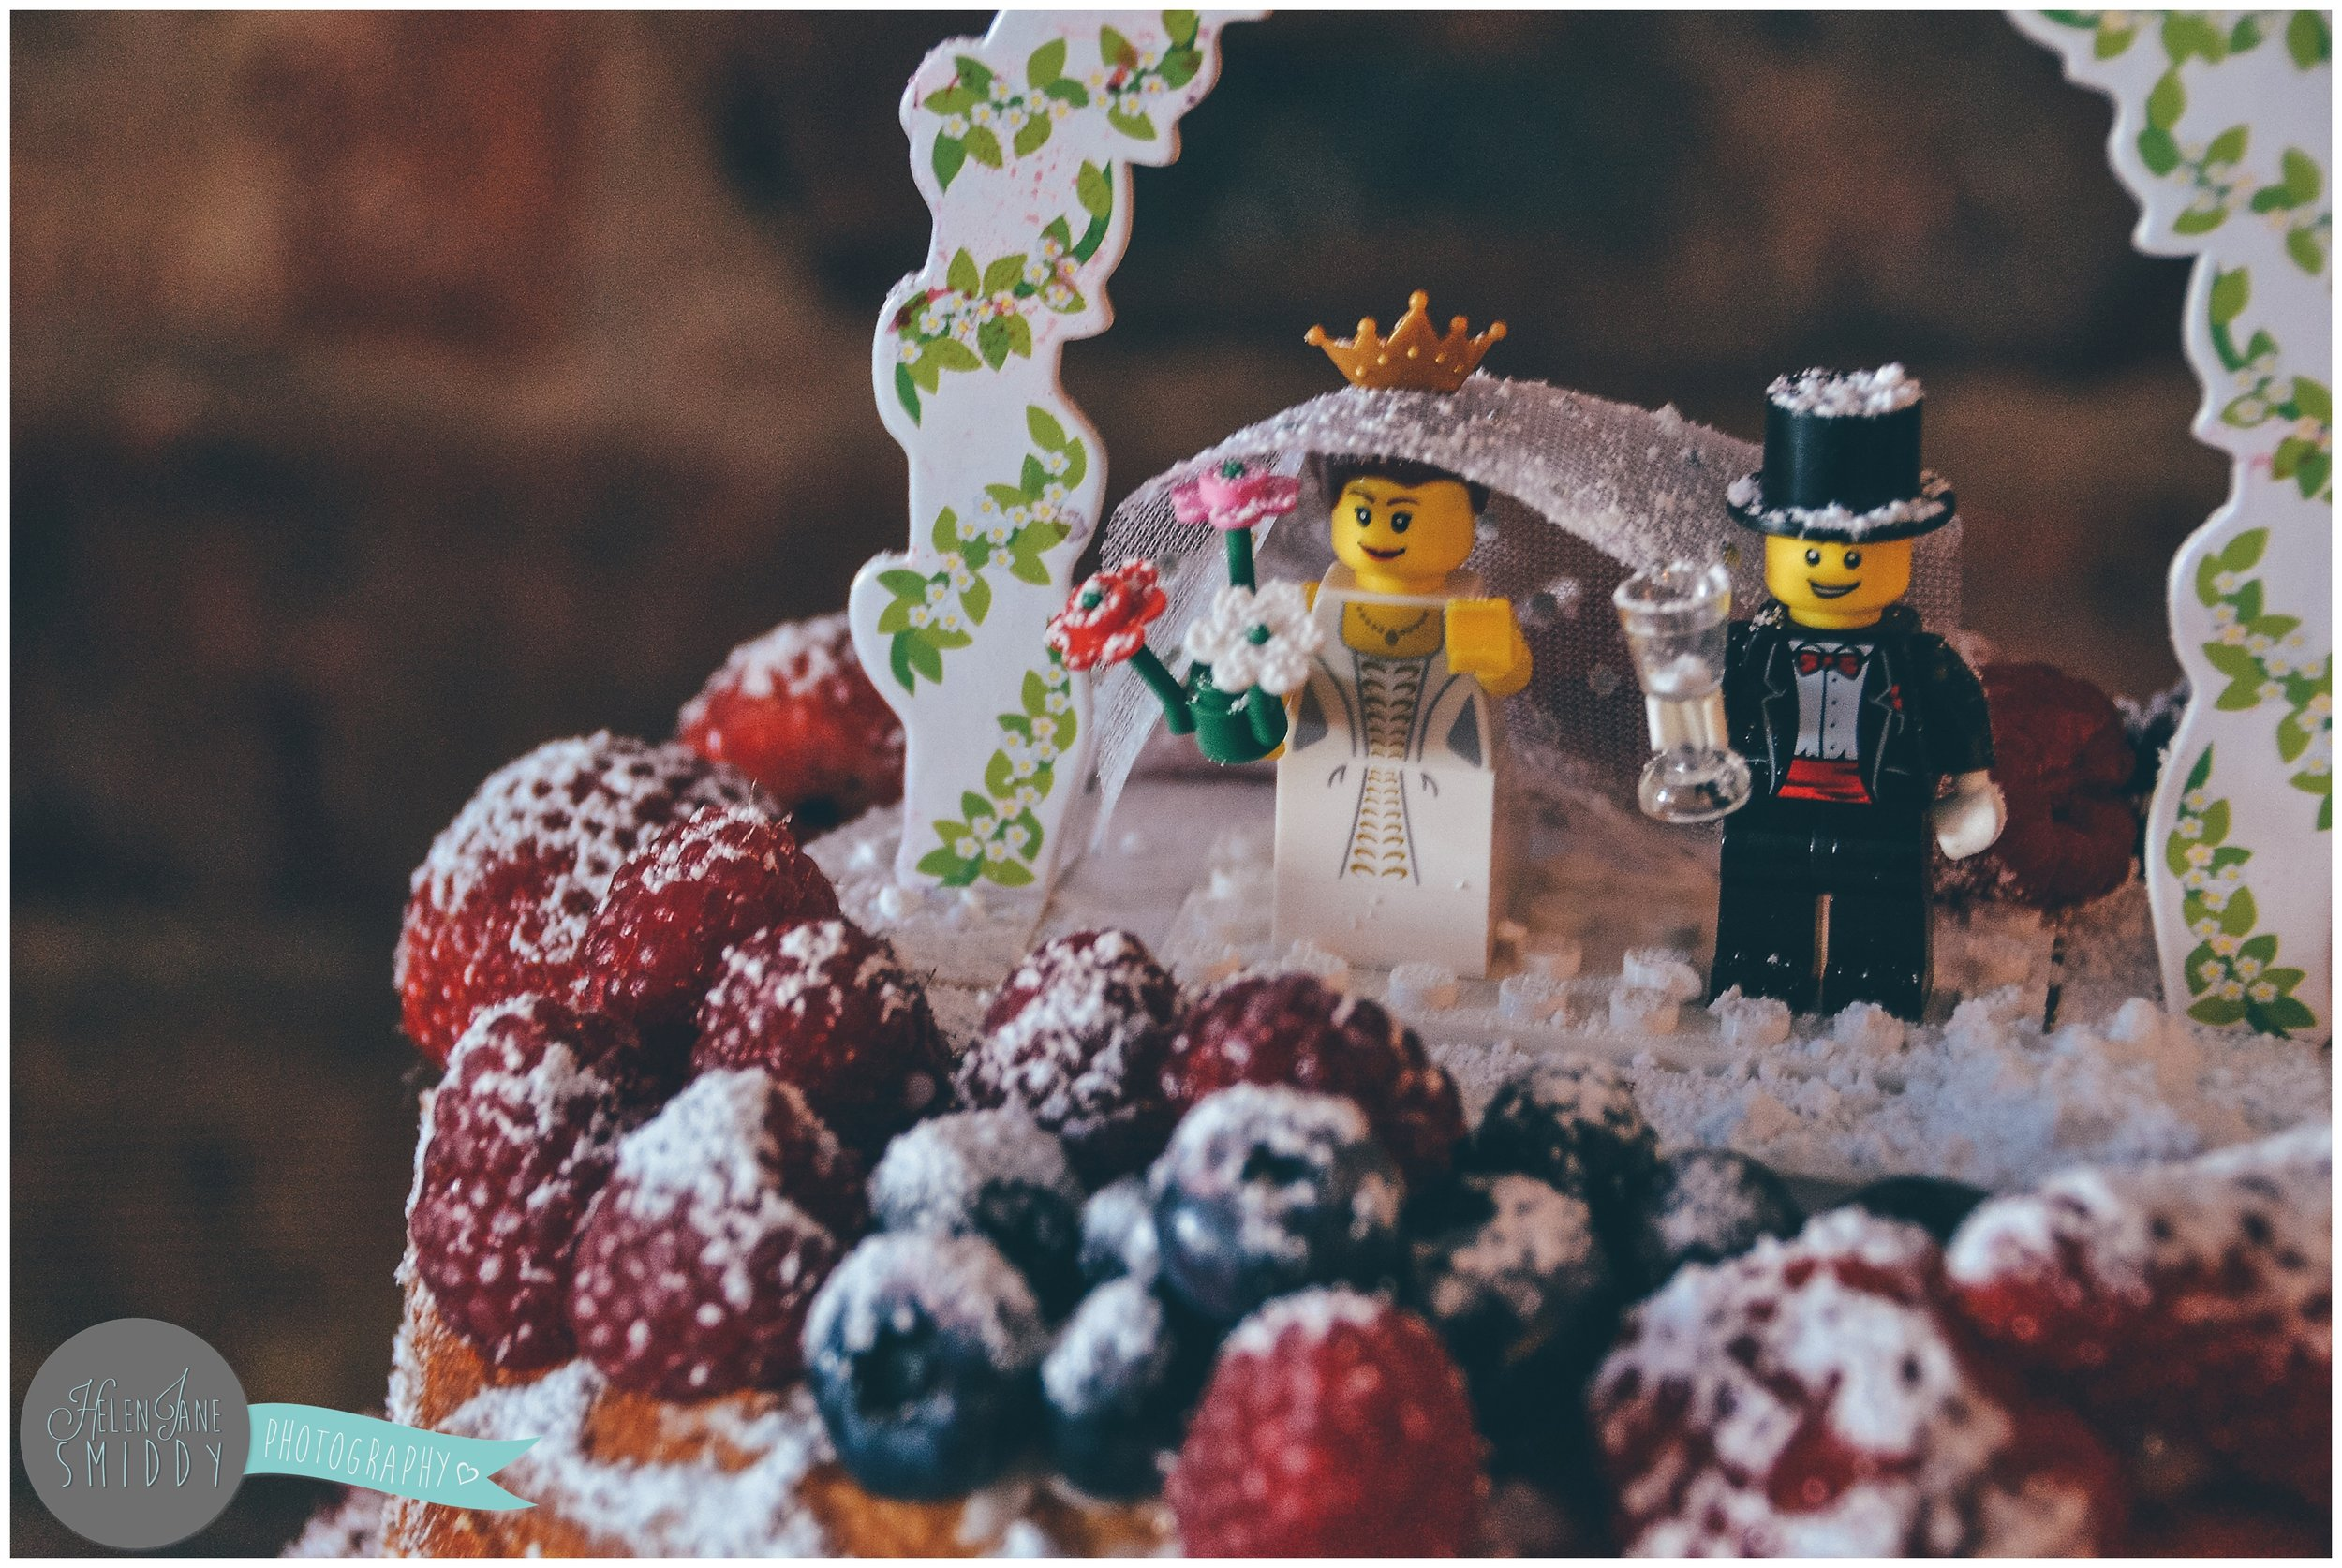 A beautiful homemade wedding cake with lego men toppers.